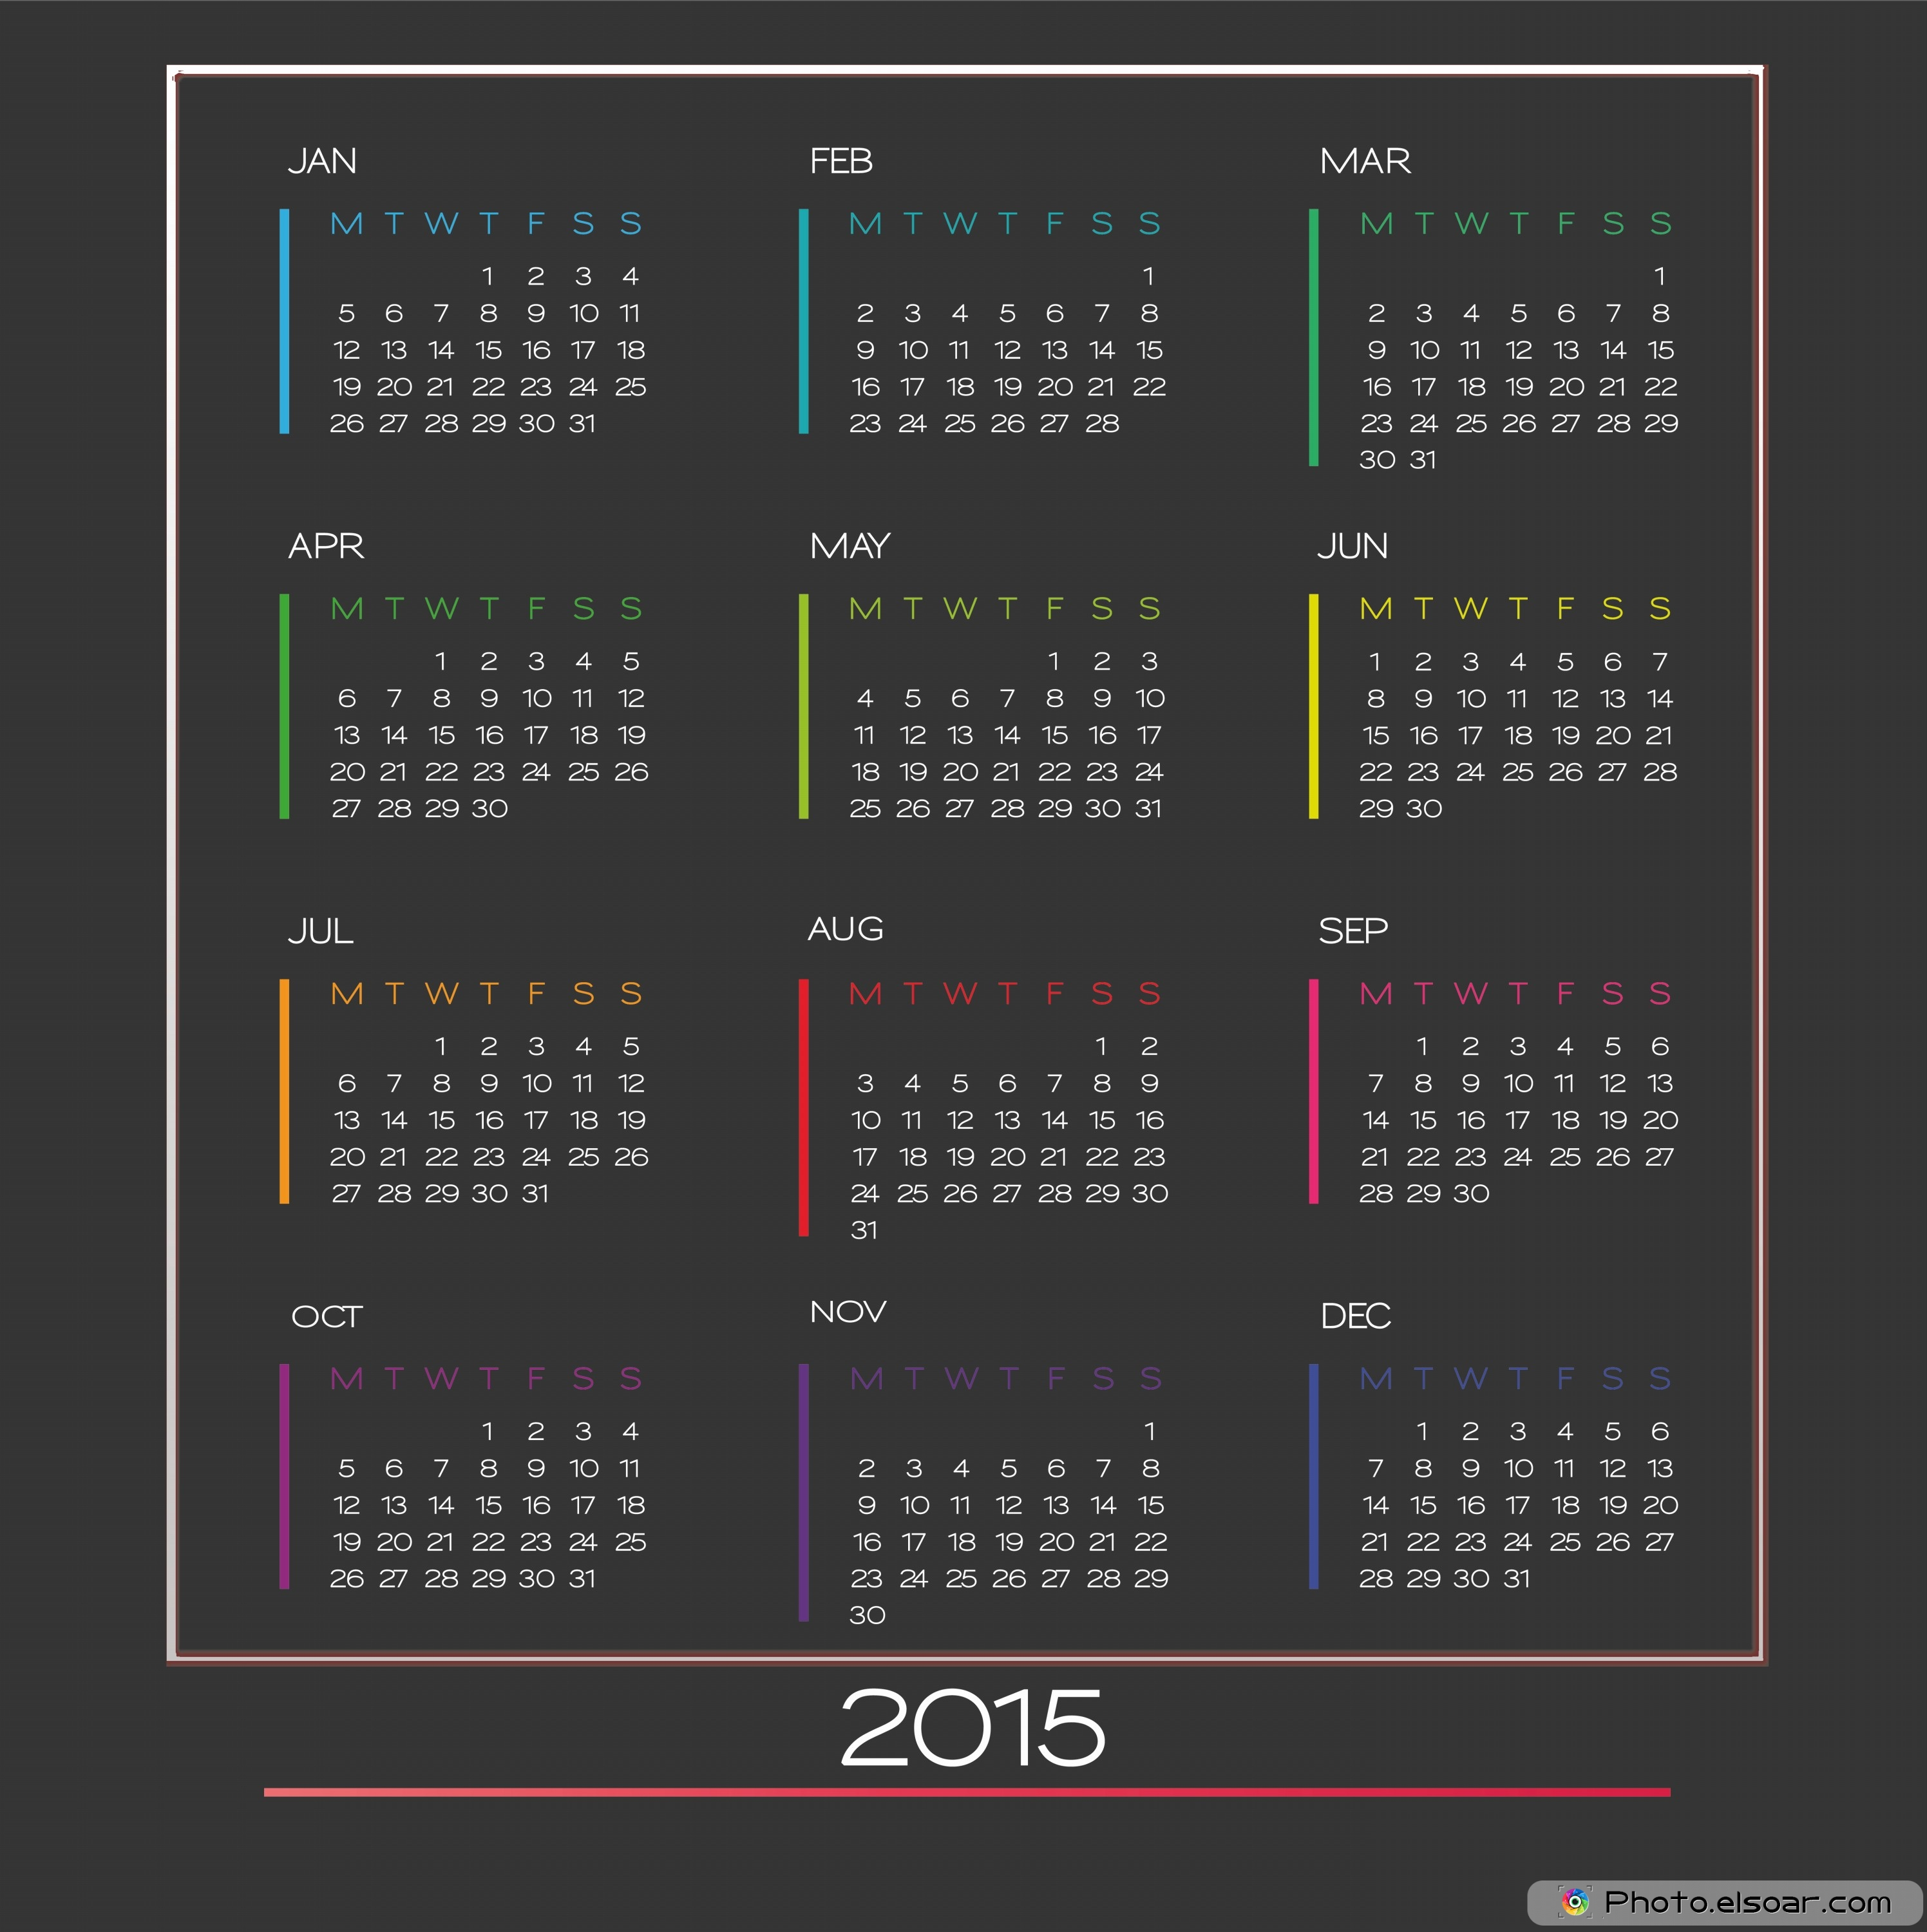 Free Printable Yearly 2015 Calendars To Make New